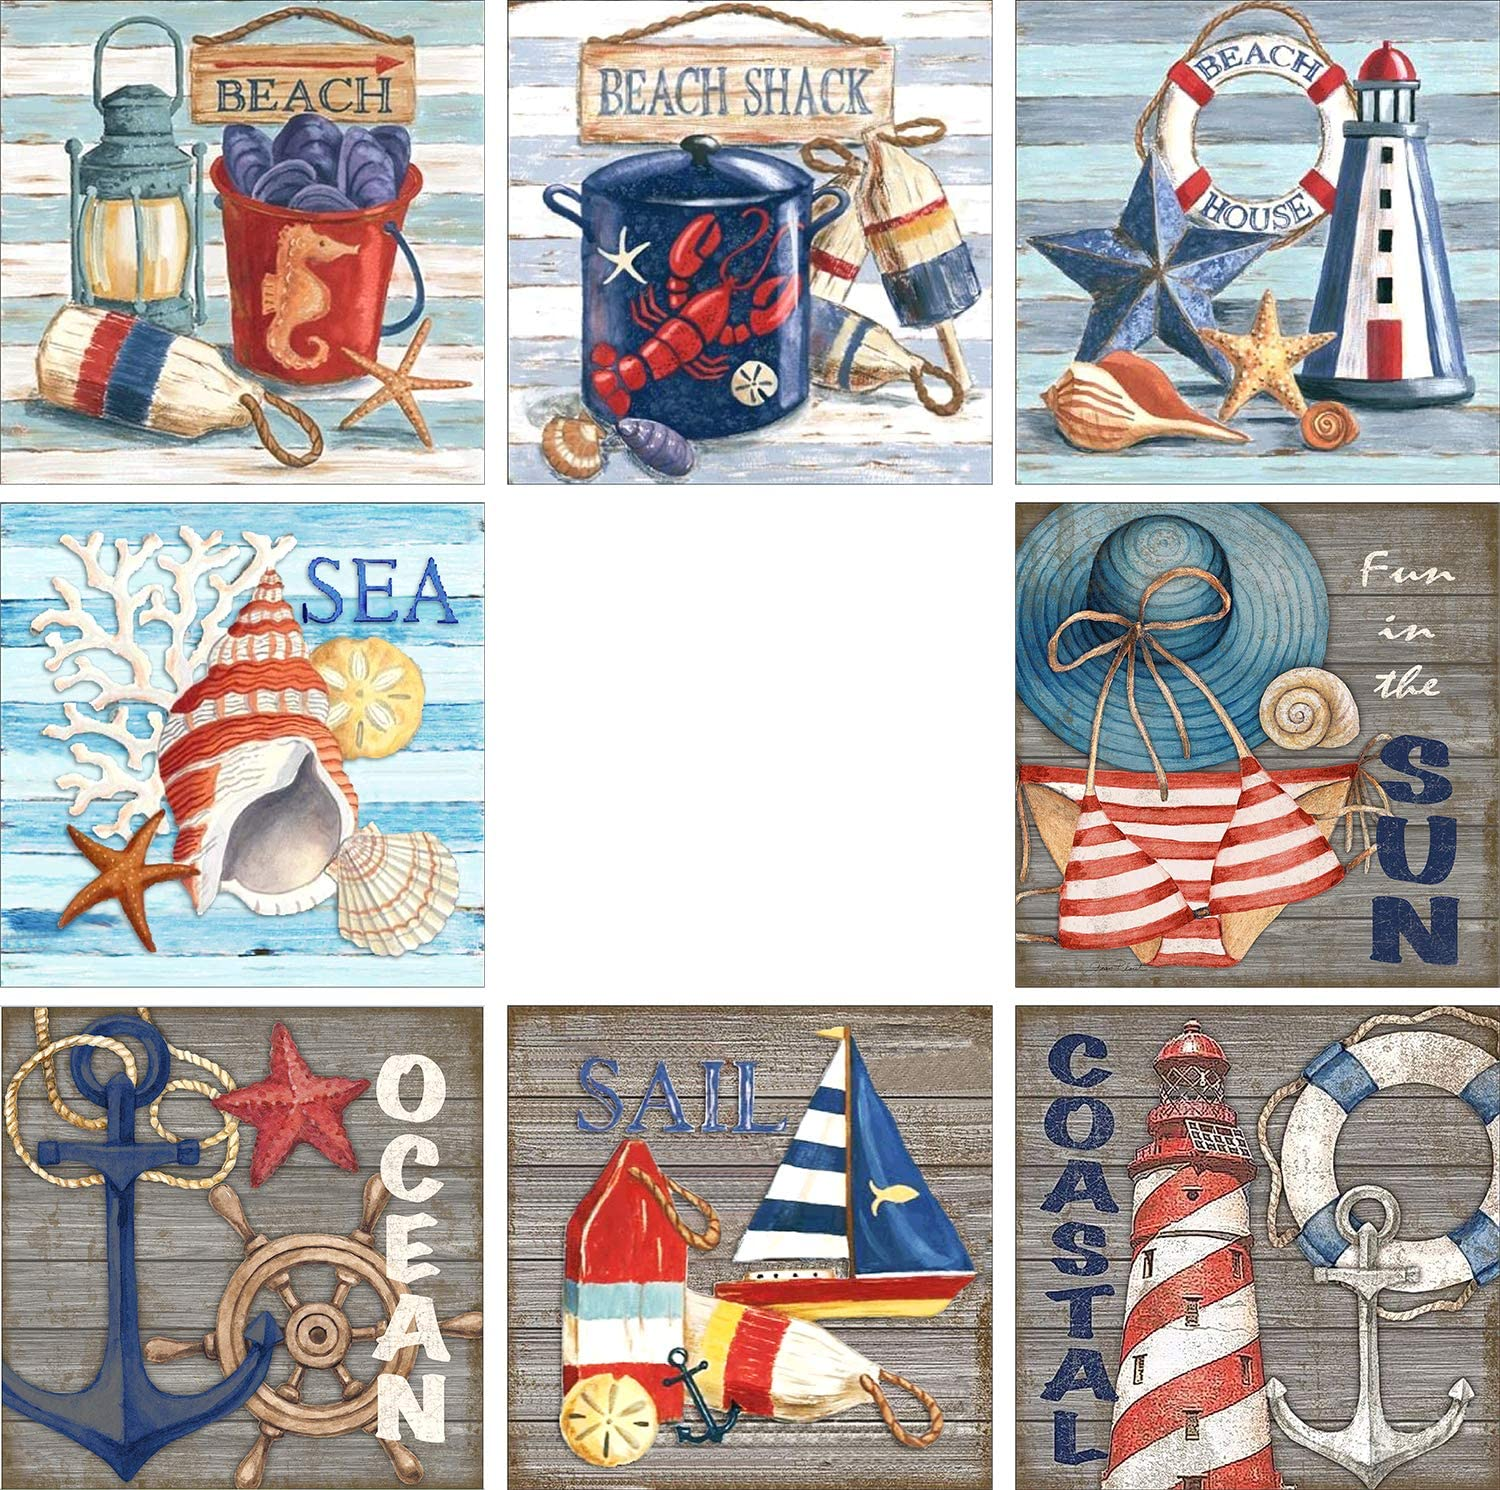 8 Pack 5D Diamond Painting by Numbers Diamond Art Dotz Kits Full Drill for Adults Kids Beginners Nautical Beach for Home Wall Decoration, Pool Beach Party Game, 12 X 12 Inch